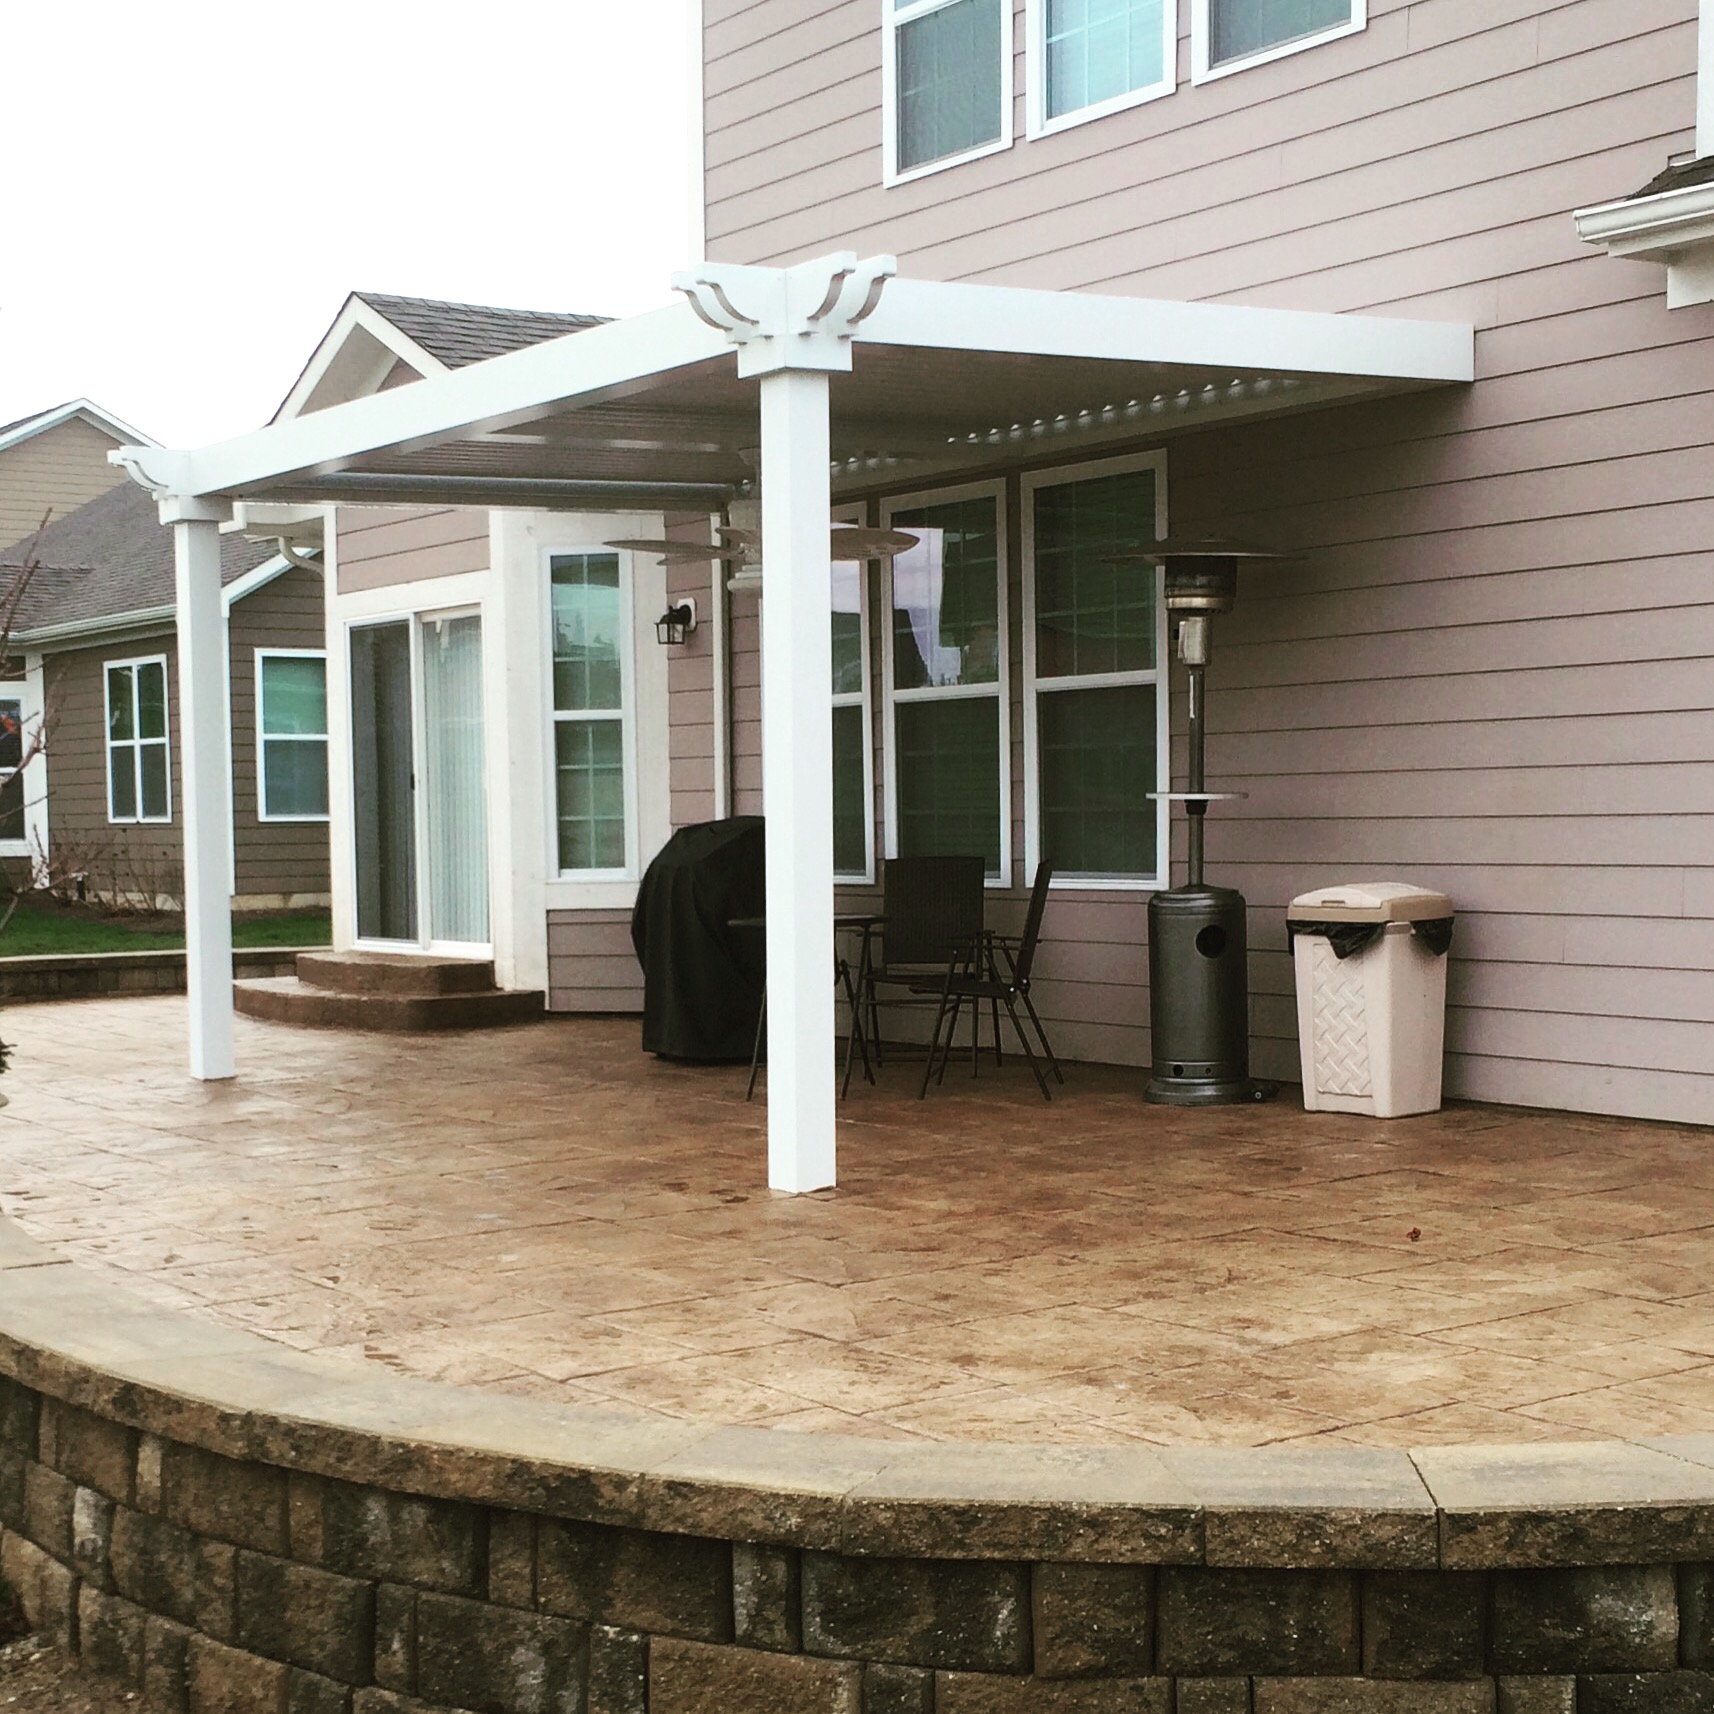 Noblesville, IN - Patio cover - Attached